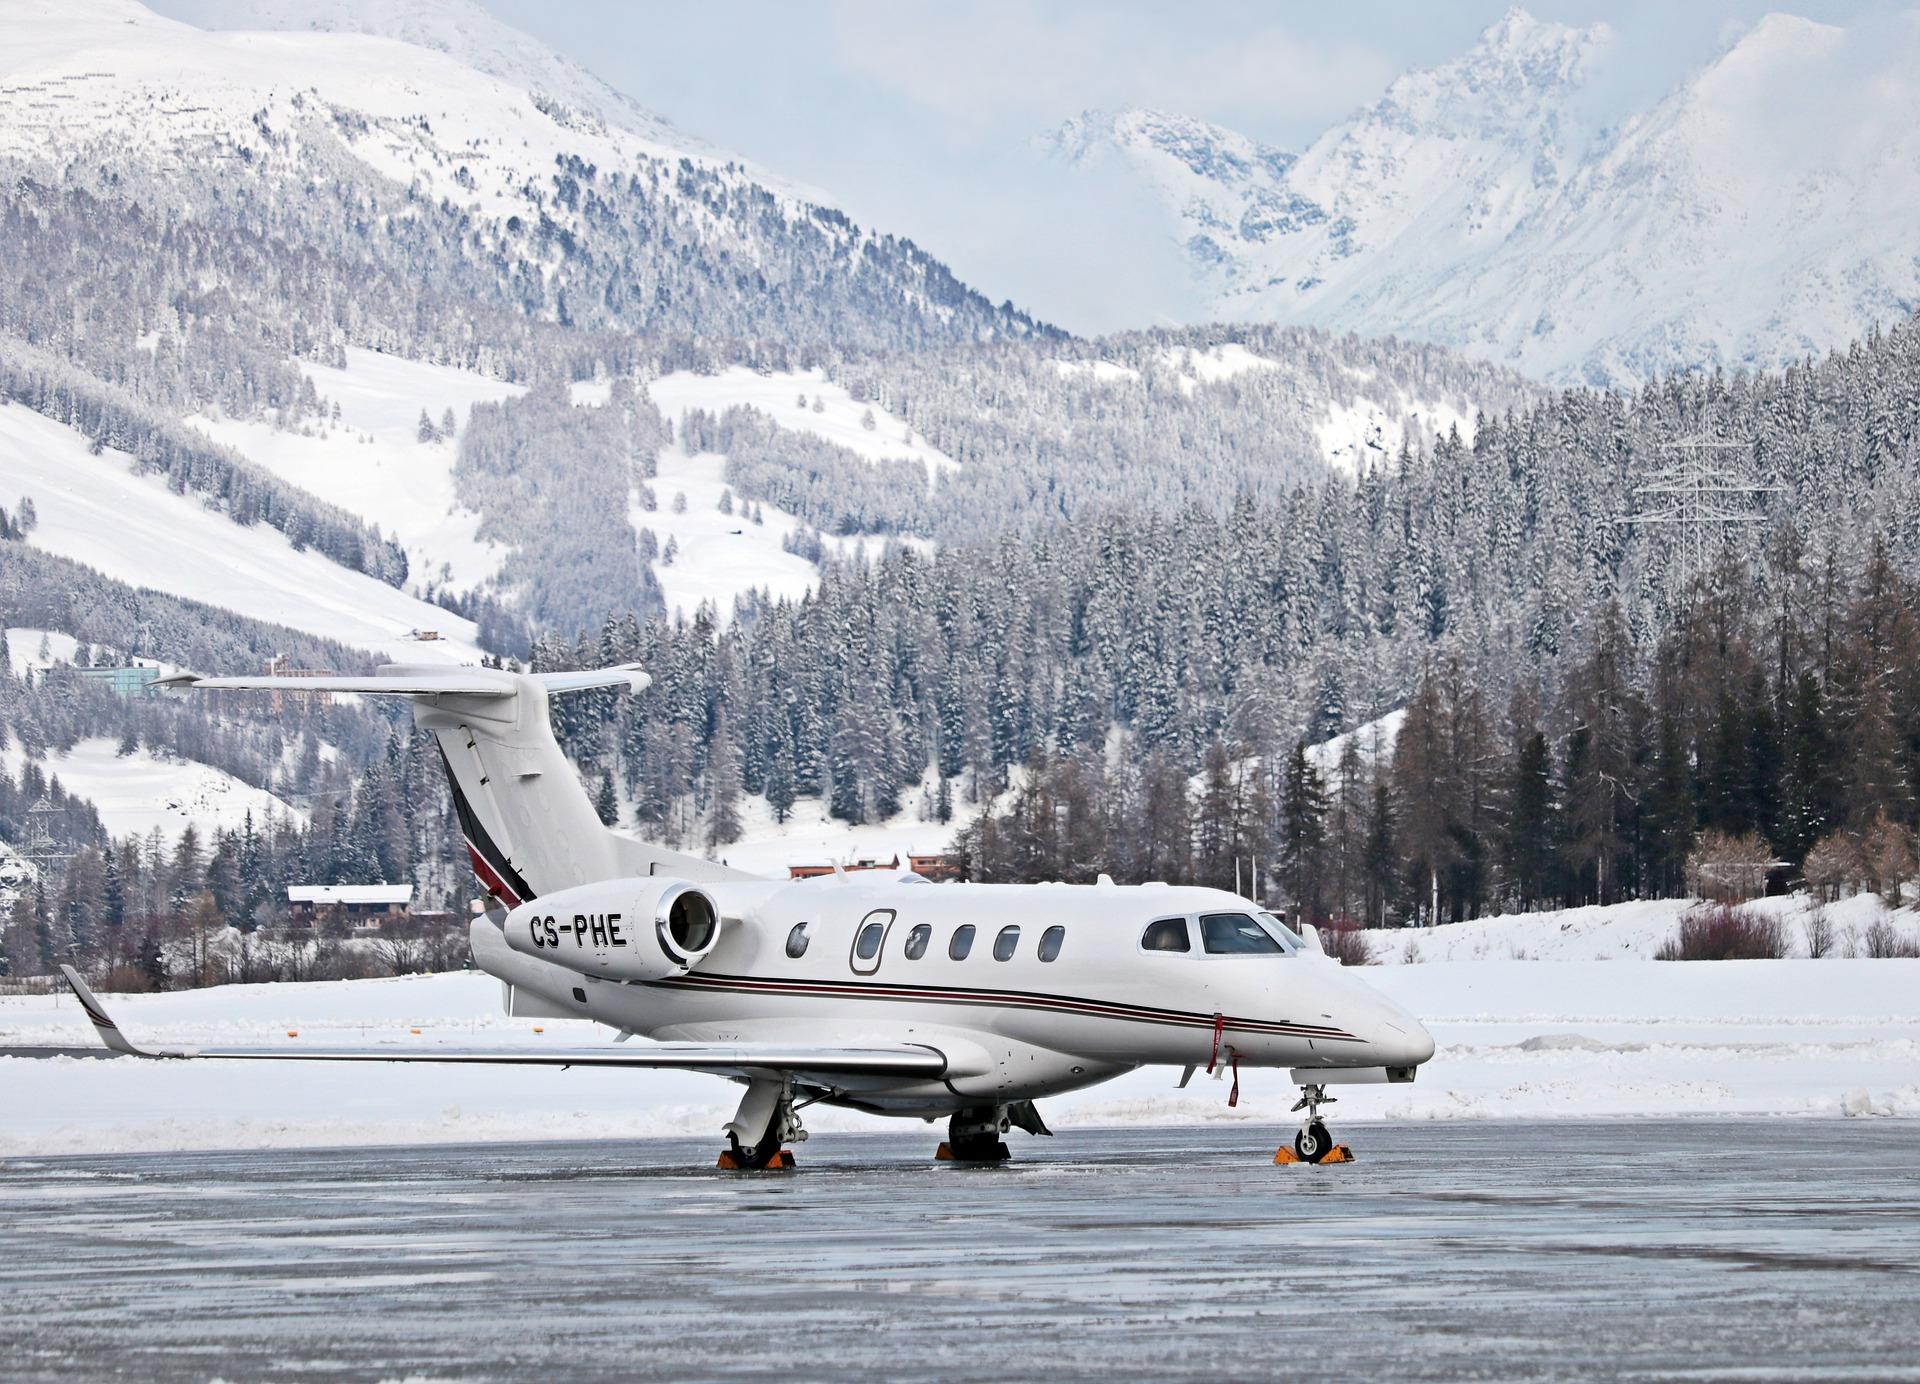 courier aircraft cold ice mountain landscape